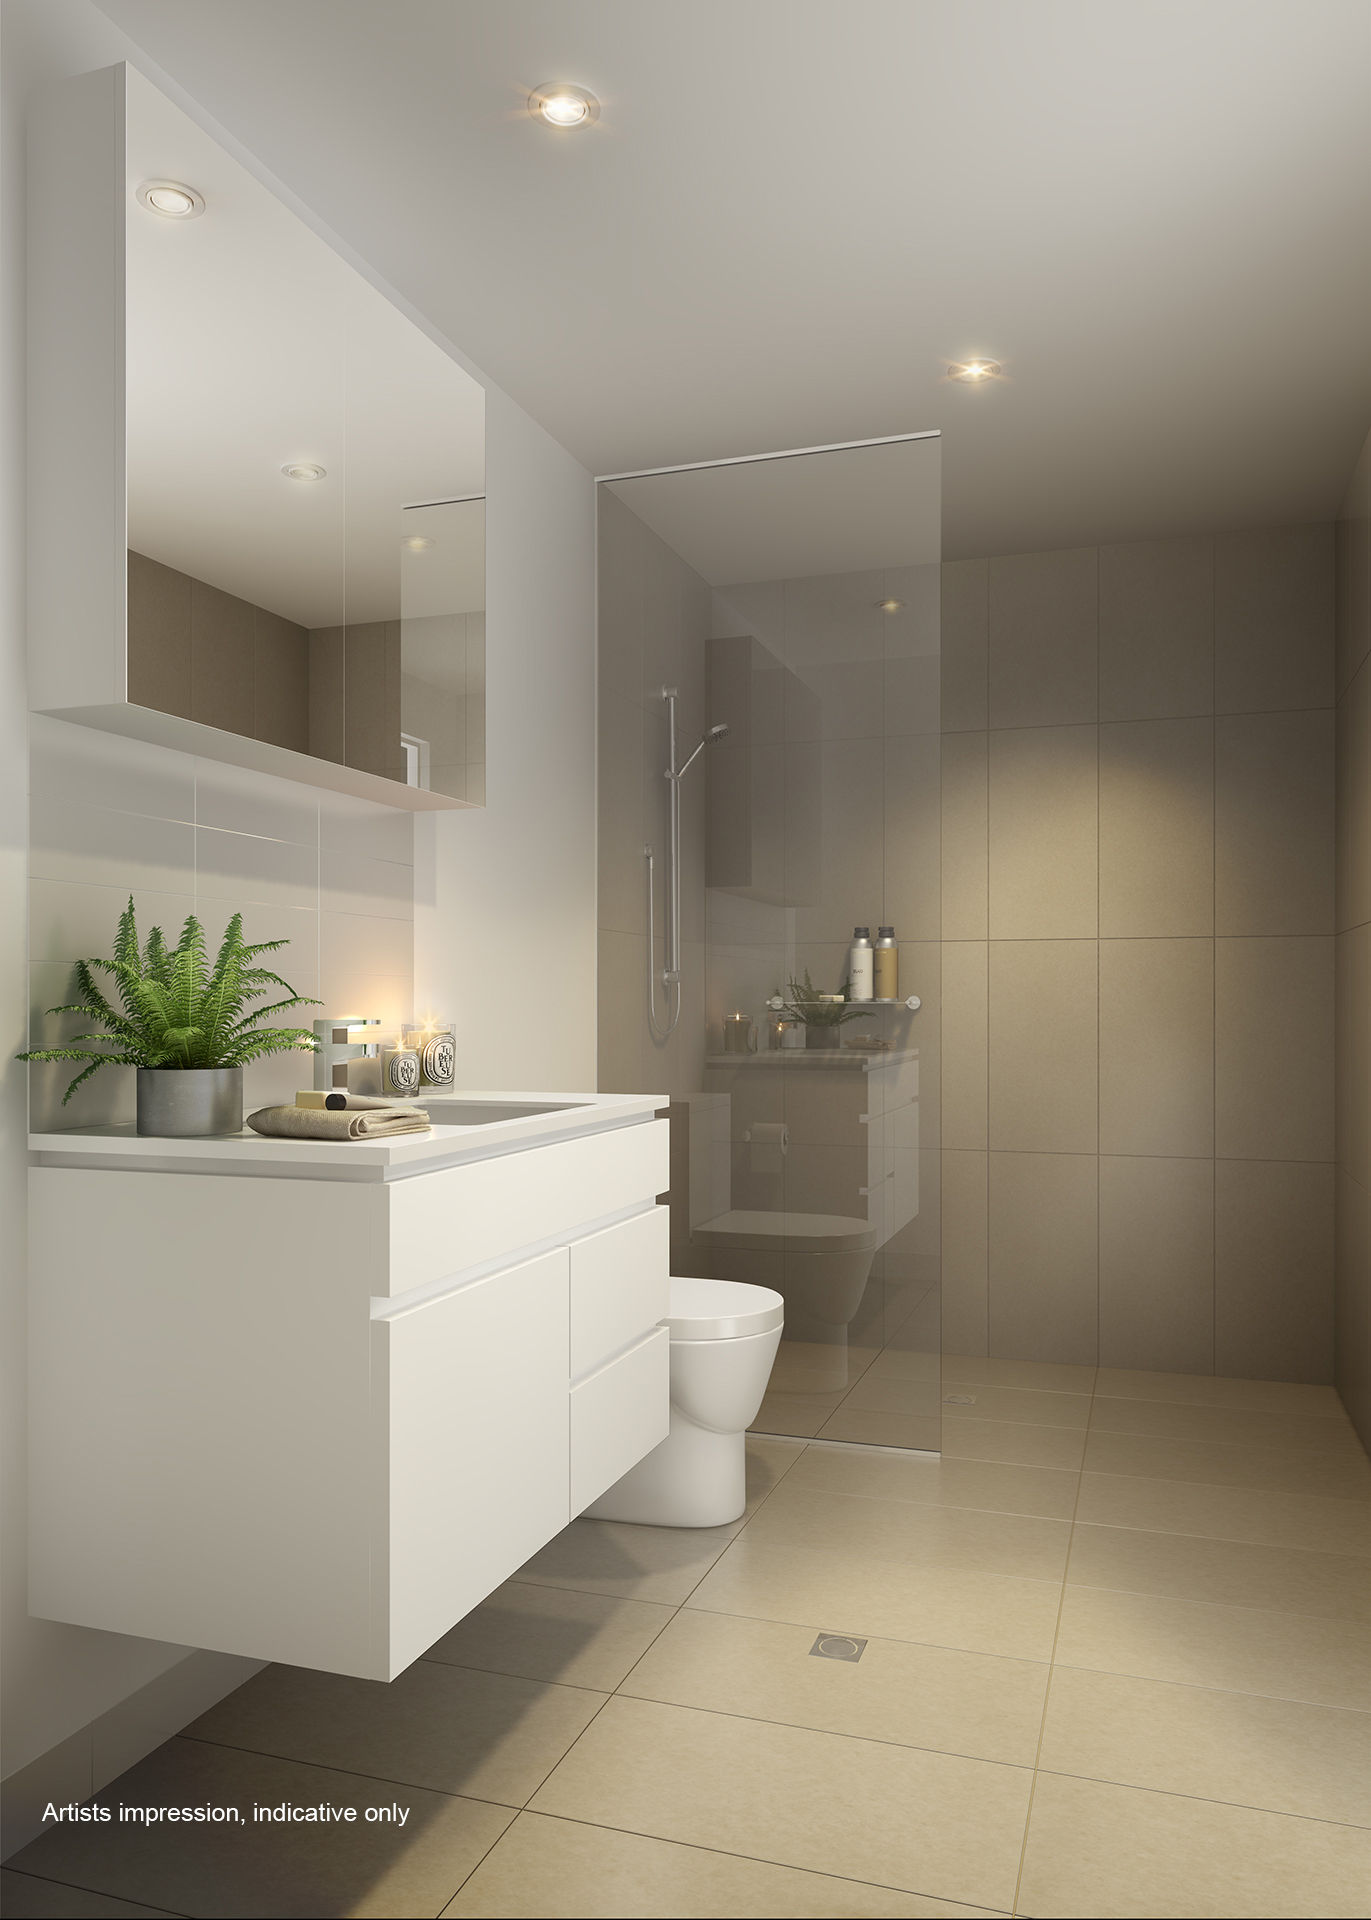 Hamilton Reach Riverlight East Bathroom Specific Property